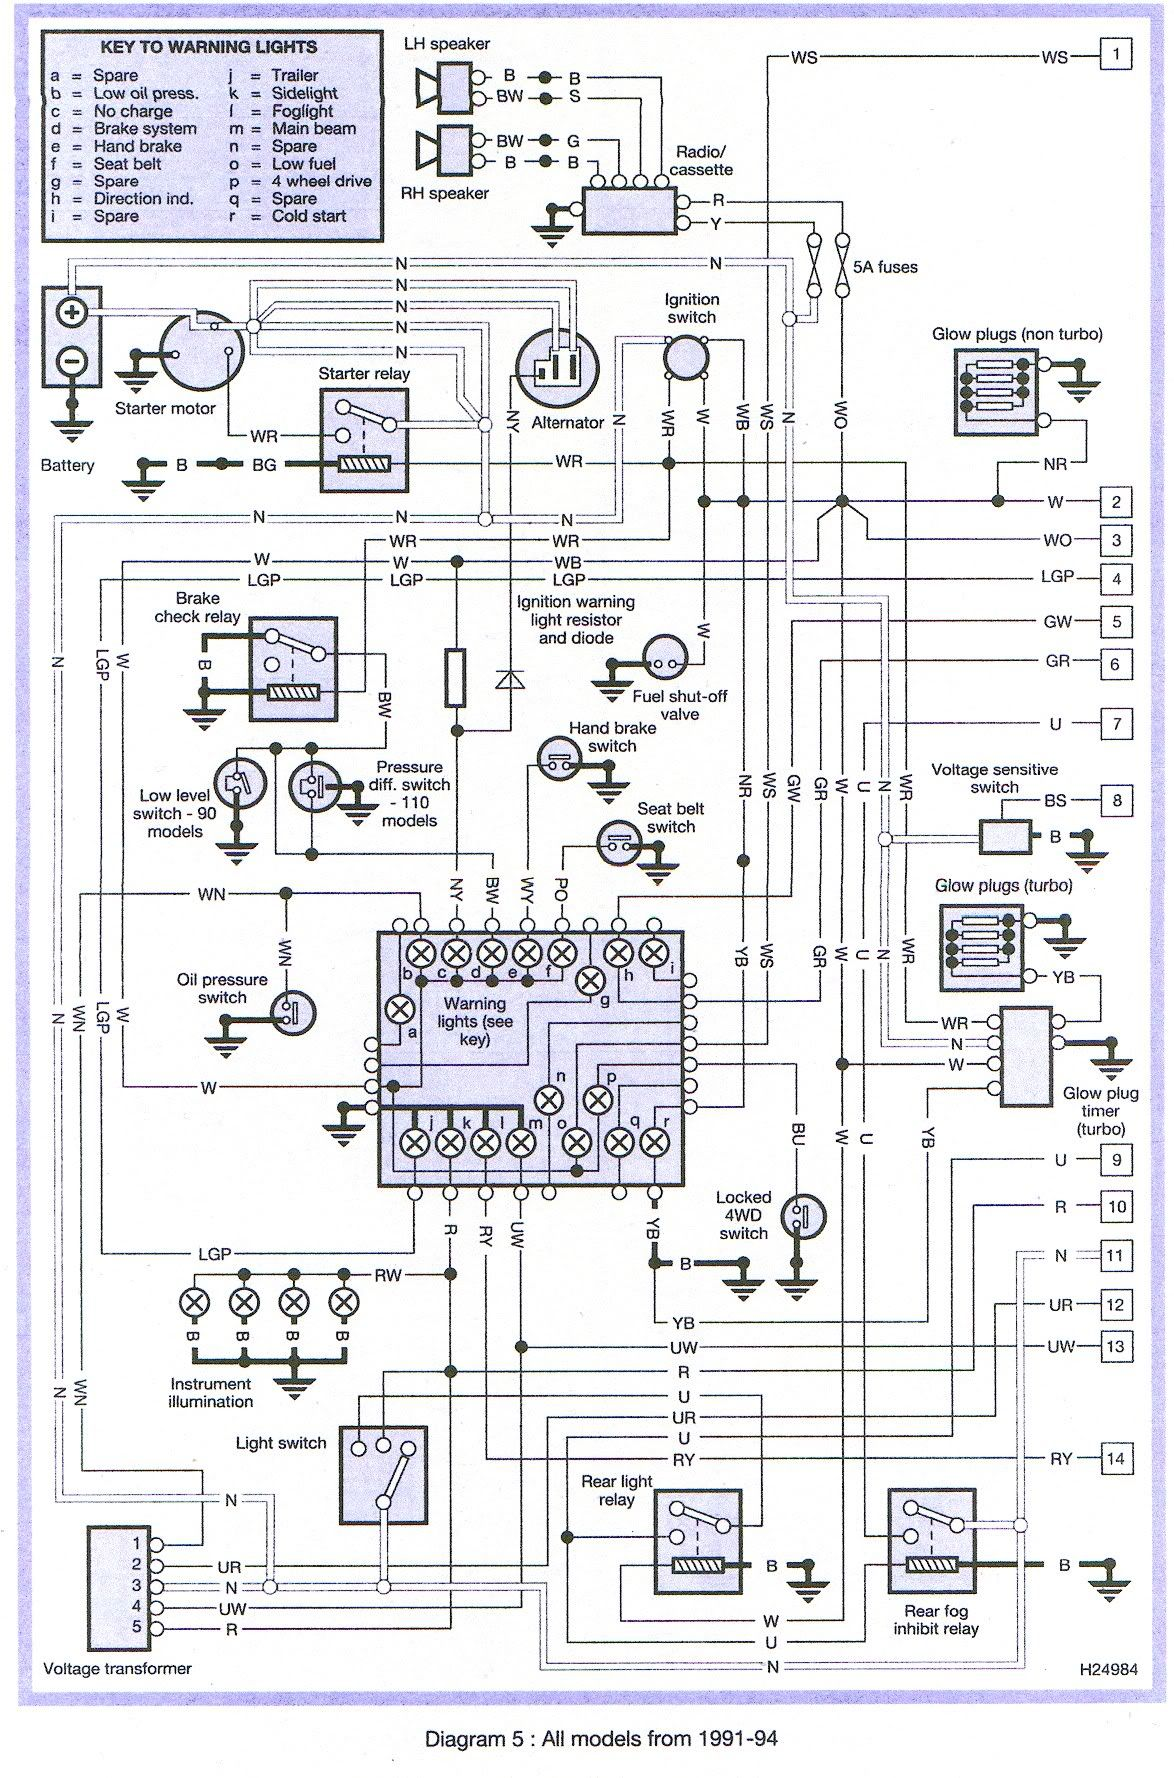 [SCHEMATICS_48IU]  Land Rover Discovery Wiring Diagram | Manual Repair With Engine Schematics  | Auto, Motos | 2007 Range Rover Wiring Diagram |  | Pinterest